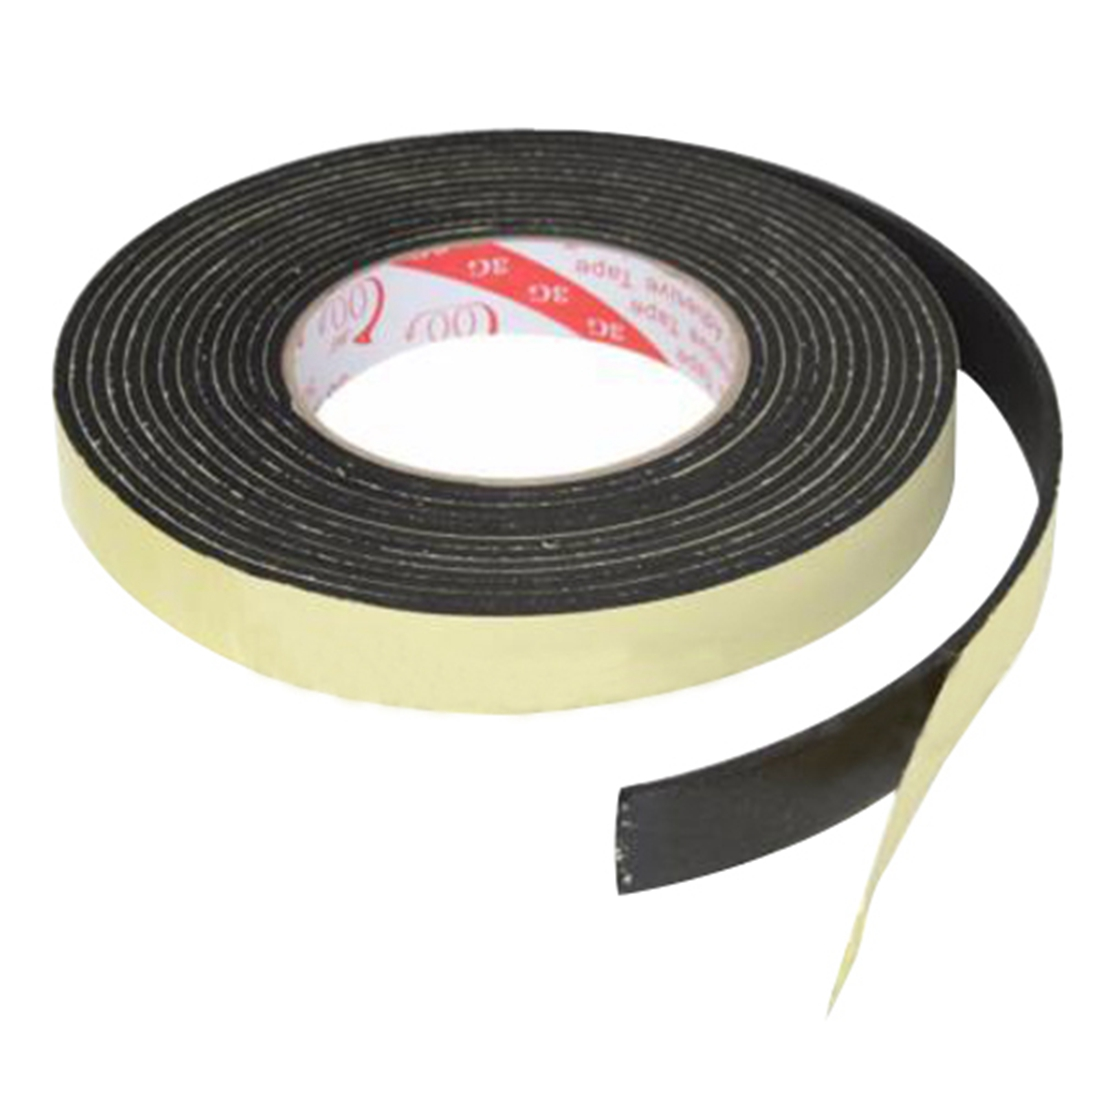 5m black single sided self adhesive foam tape closed cell 20mm wide x 3mm thick us353. Black Bedroom Furniture Sets. Home Design Ideas